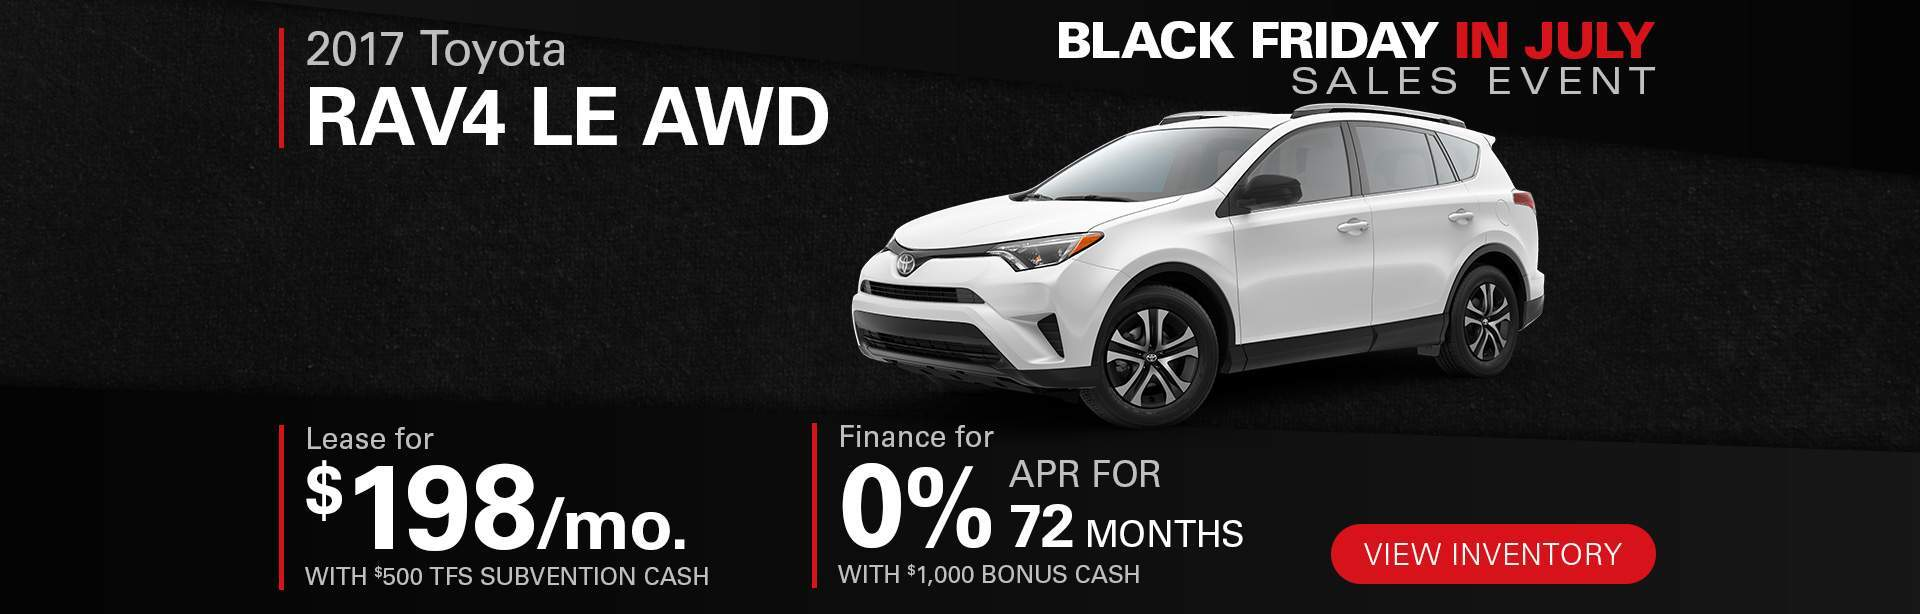 Black Friday In July RAV4 LE